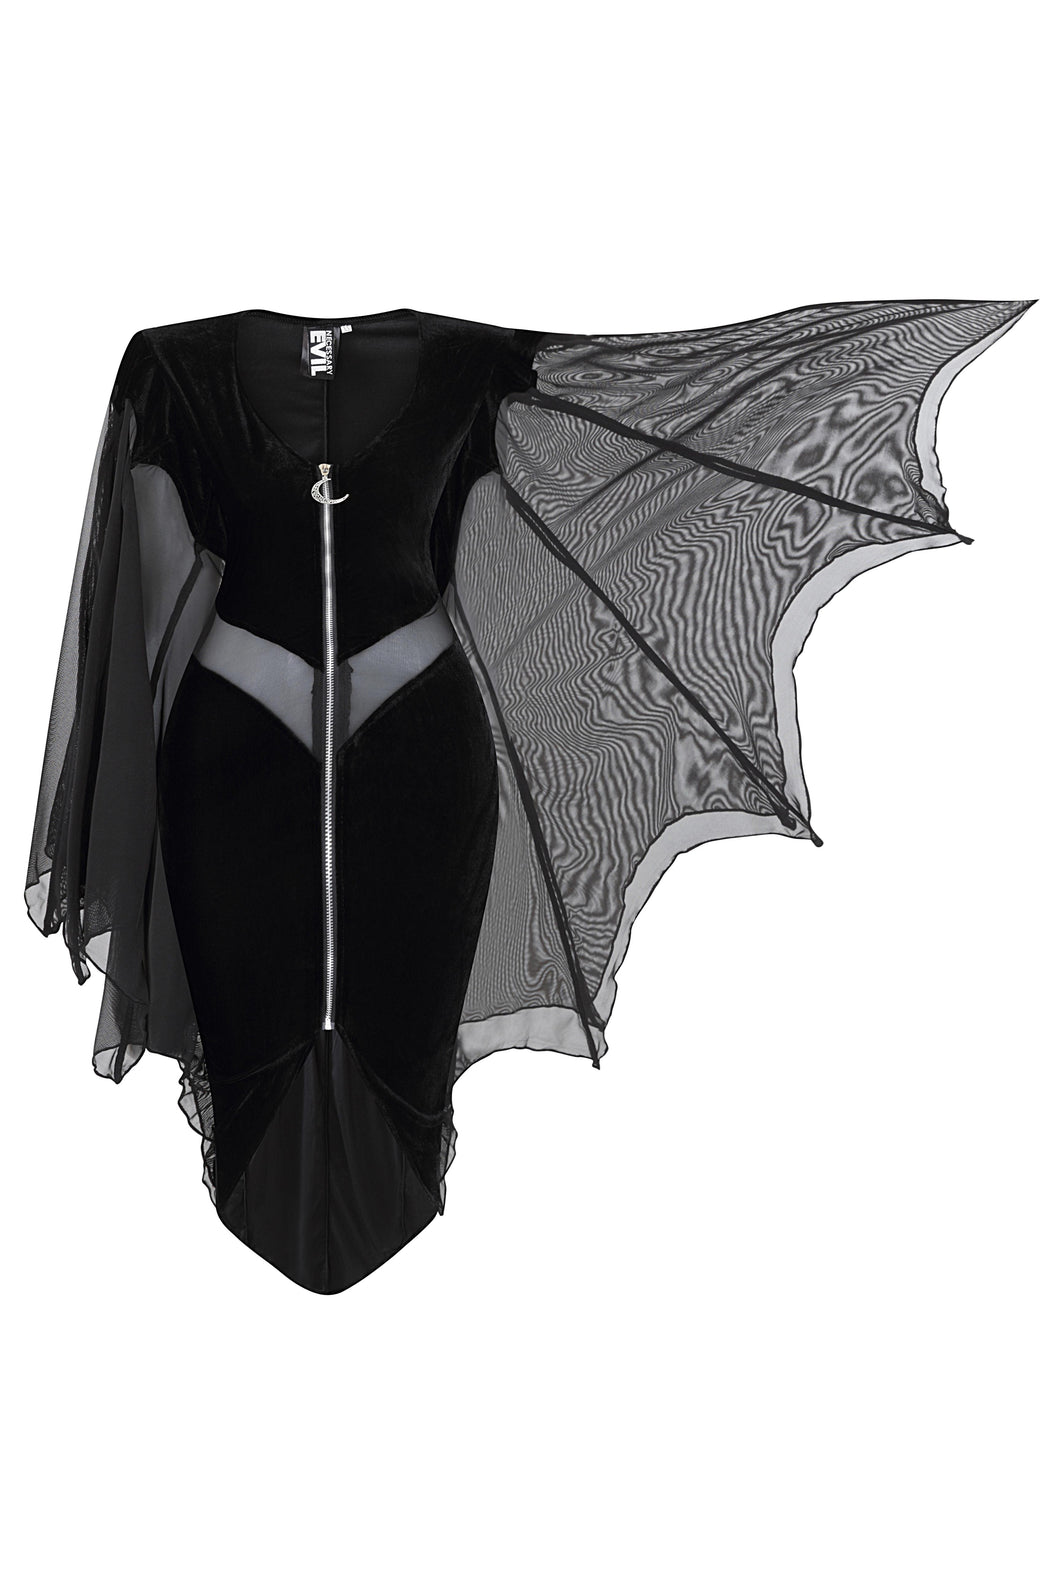 Necessary Evil Selene Velvet Dress with Bat Wing Effect - Kate's Clothing